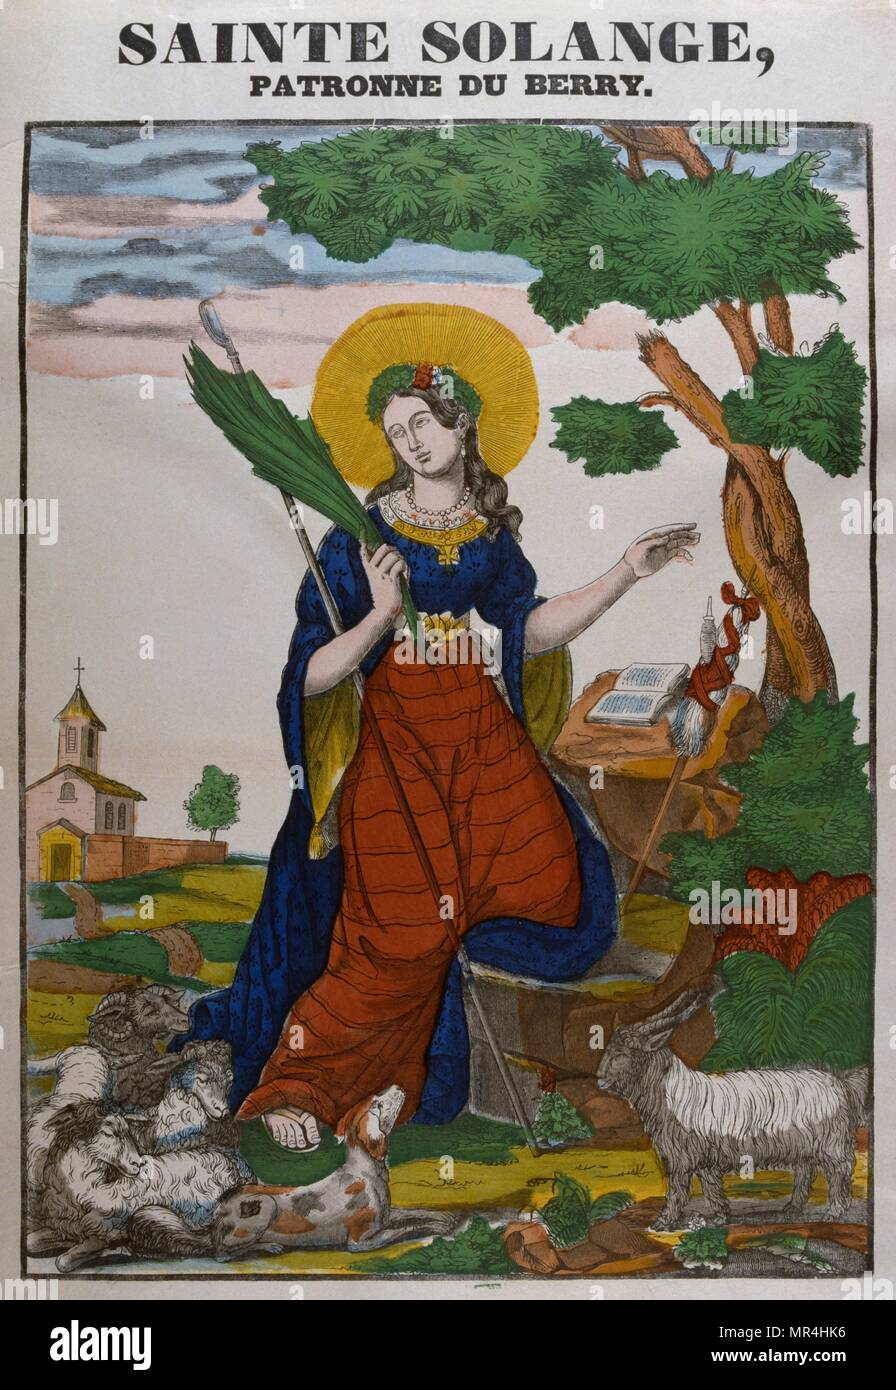 Coloured woodblock illustration showing Saint Solange (died c. 880). She was a Frankish shepherdess and a locally venerated Christian saint, whose cult is restricted to Sainte-Solange, Cher. according to some, her mere presence cured the sick and exorcised devils. she was abducted and beheaded - Stock Image